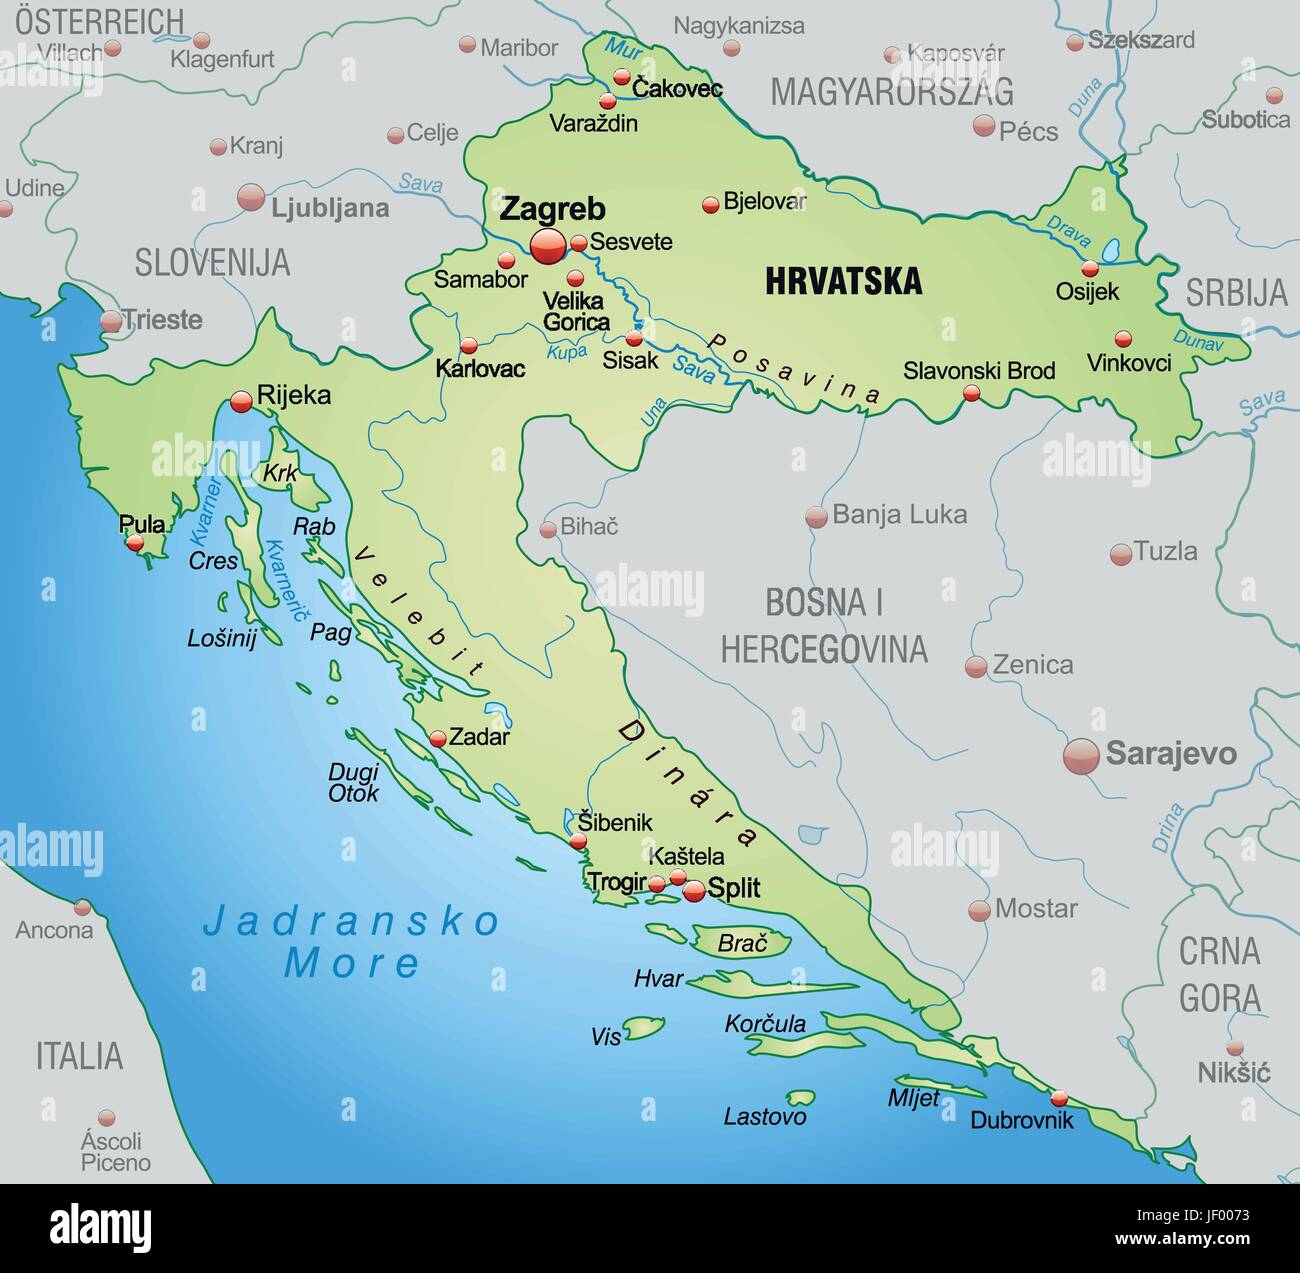 Border card croatia synopsis borders atlas map of the world border card croatia synopsis borders atlas map of the world map gumiabroncs Images